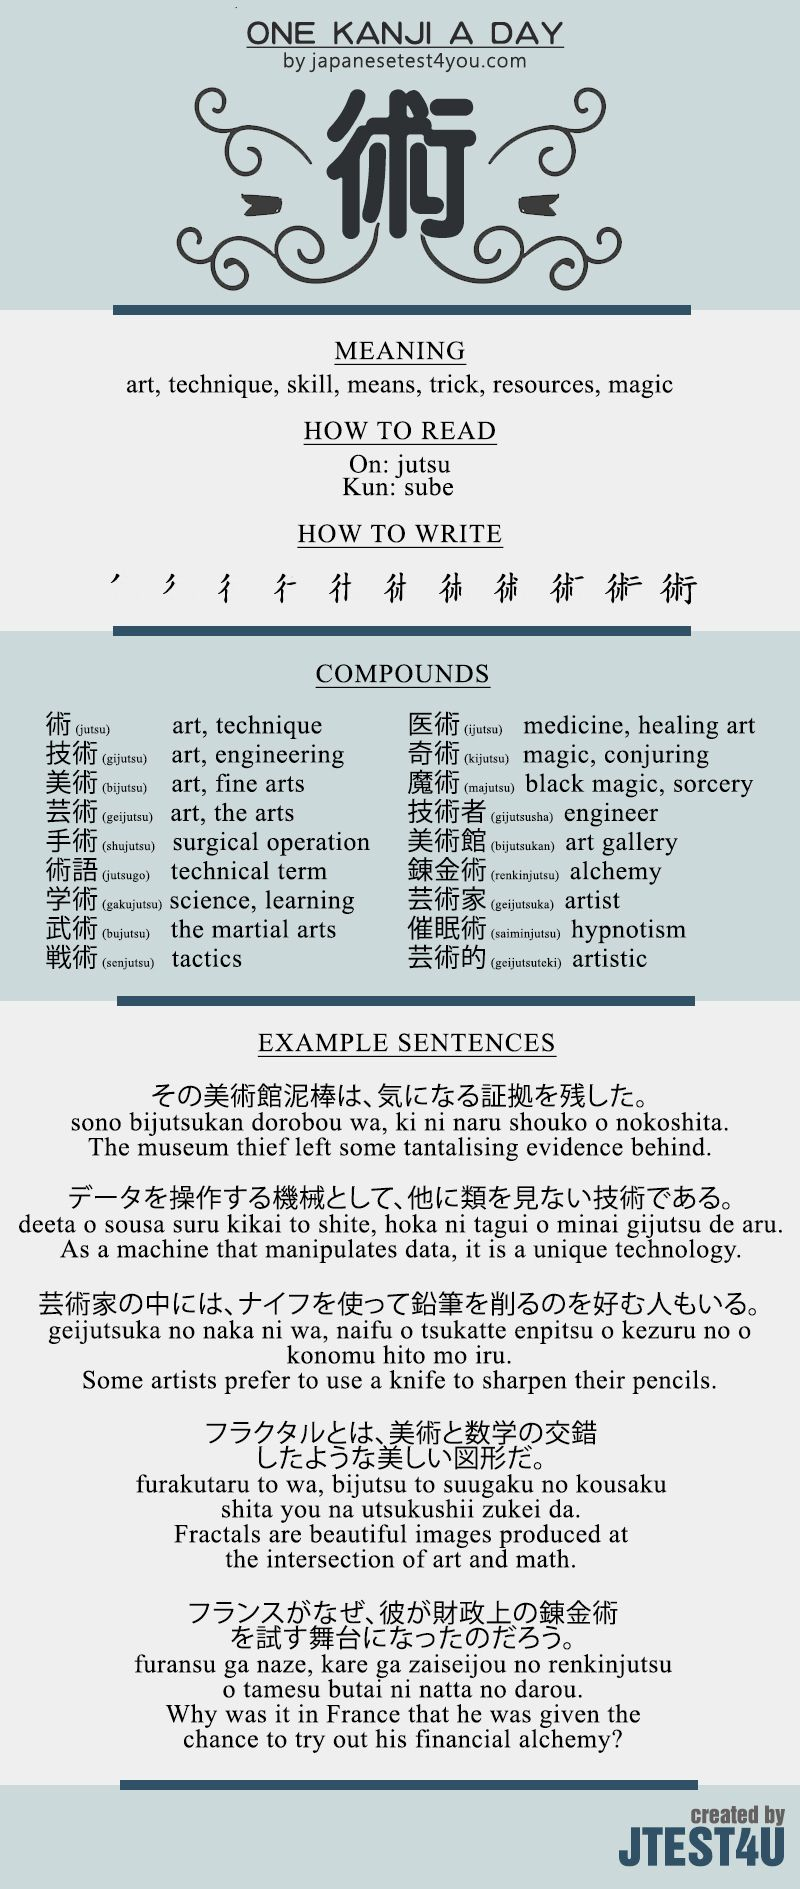 Learn One Kanji A Day With Infographic Jutsu Japanese Word Language Practice Make Perfect Essay On Man For Clas 5 In English 300